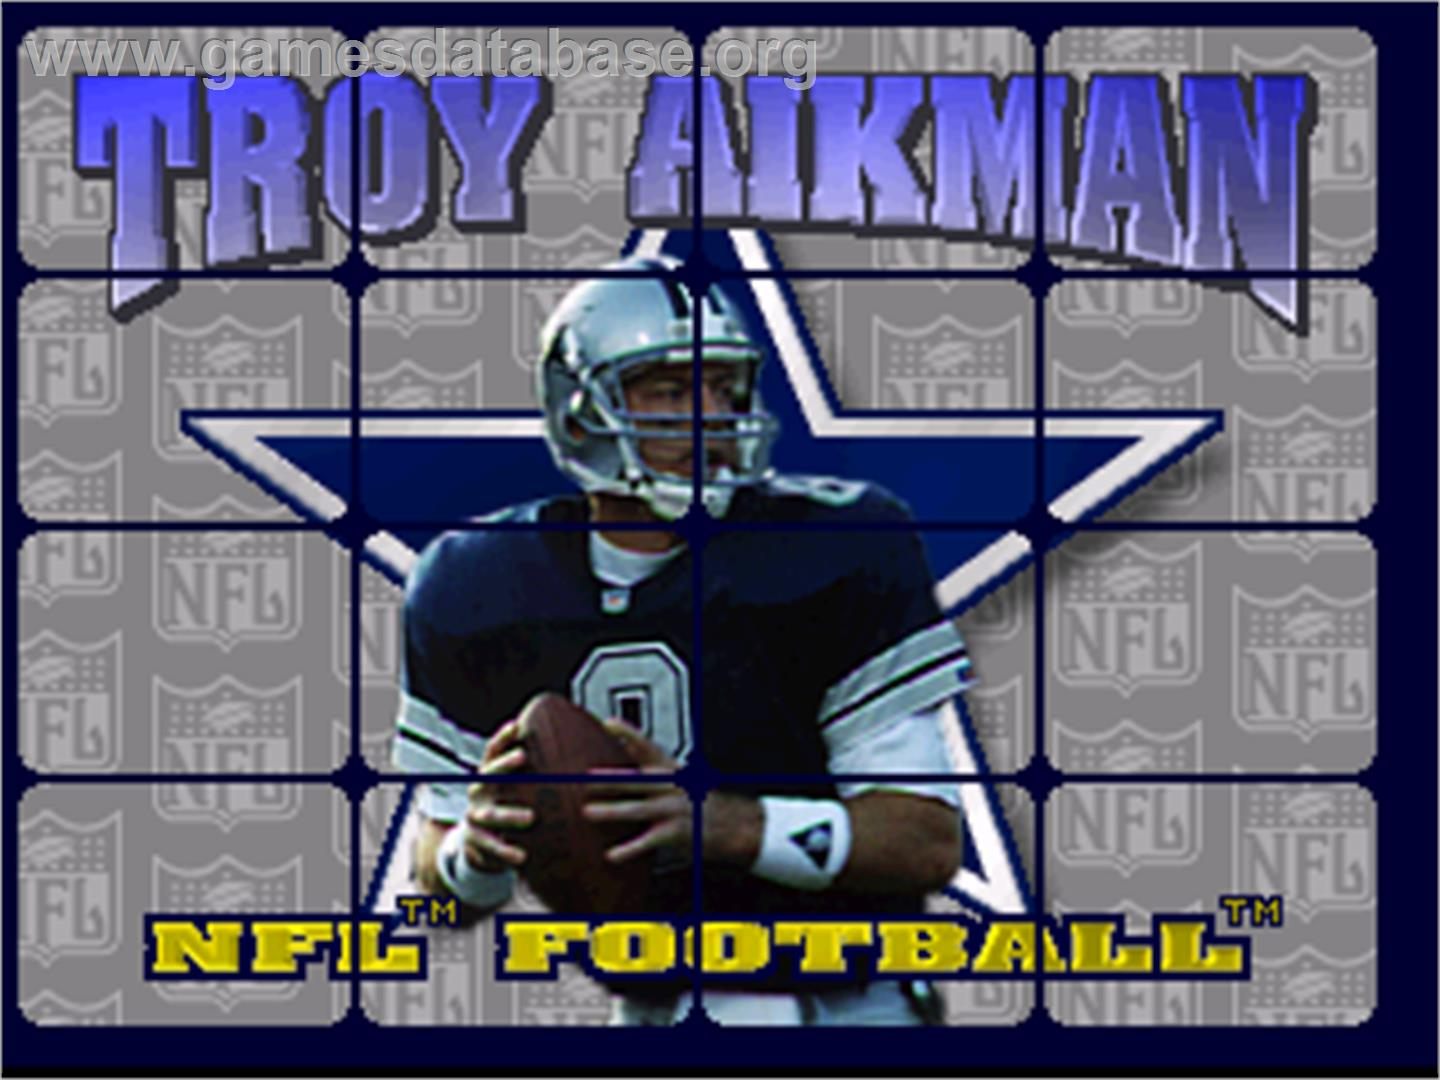 Troy Aikman NFL Football - Atari Jaguar - Artwork - Title Screen